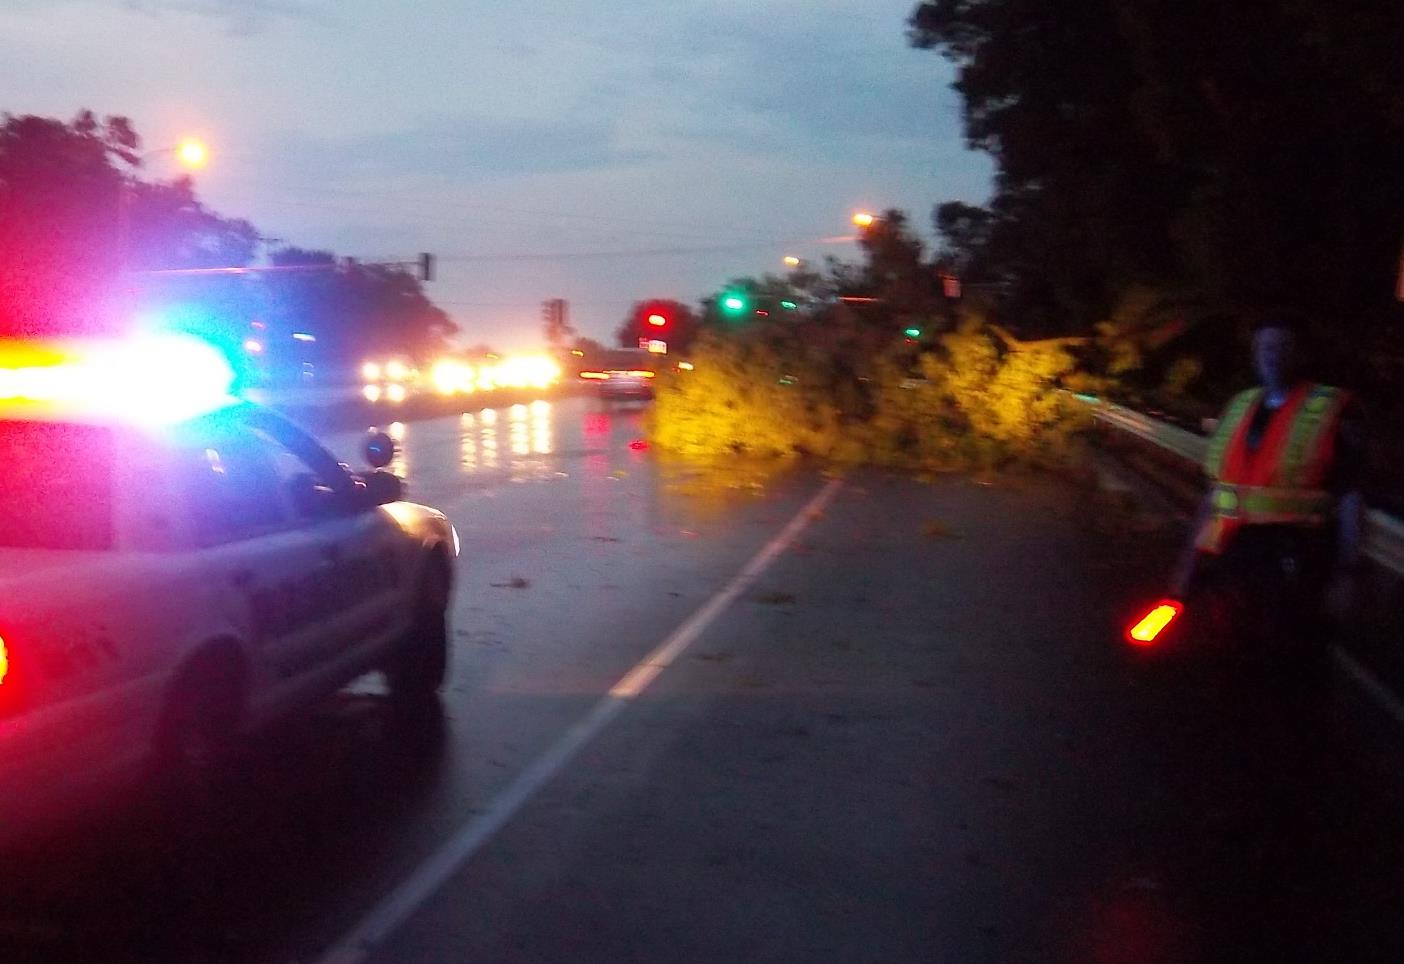 Police on the scene of a fallen tree on the highway